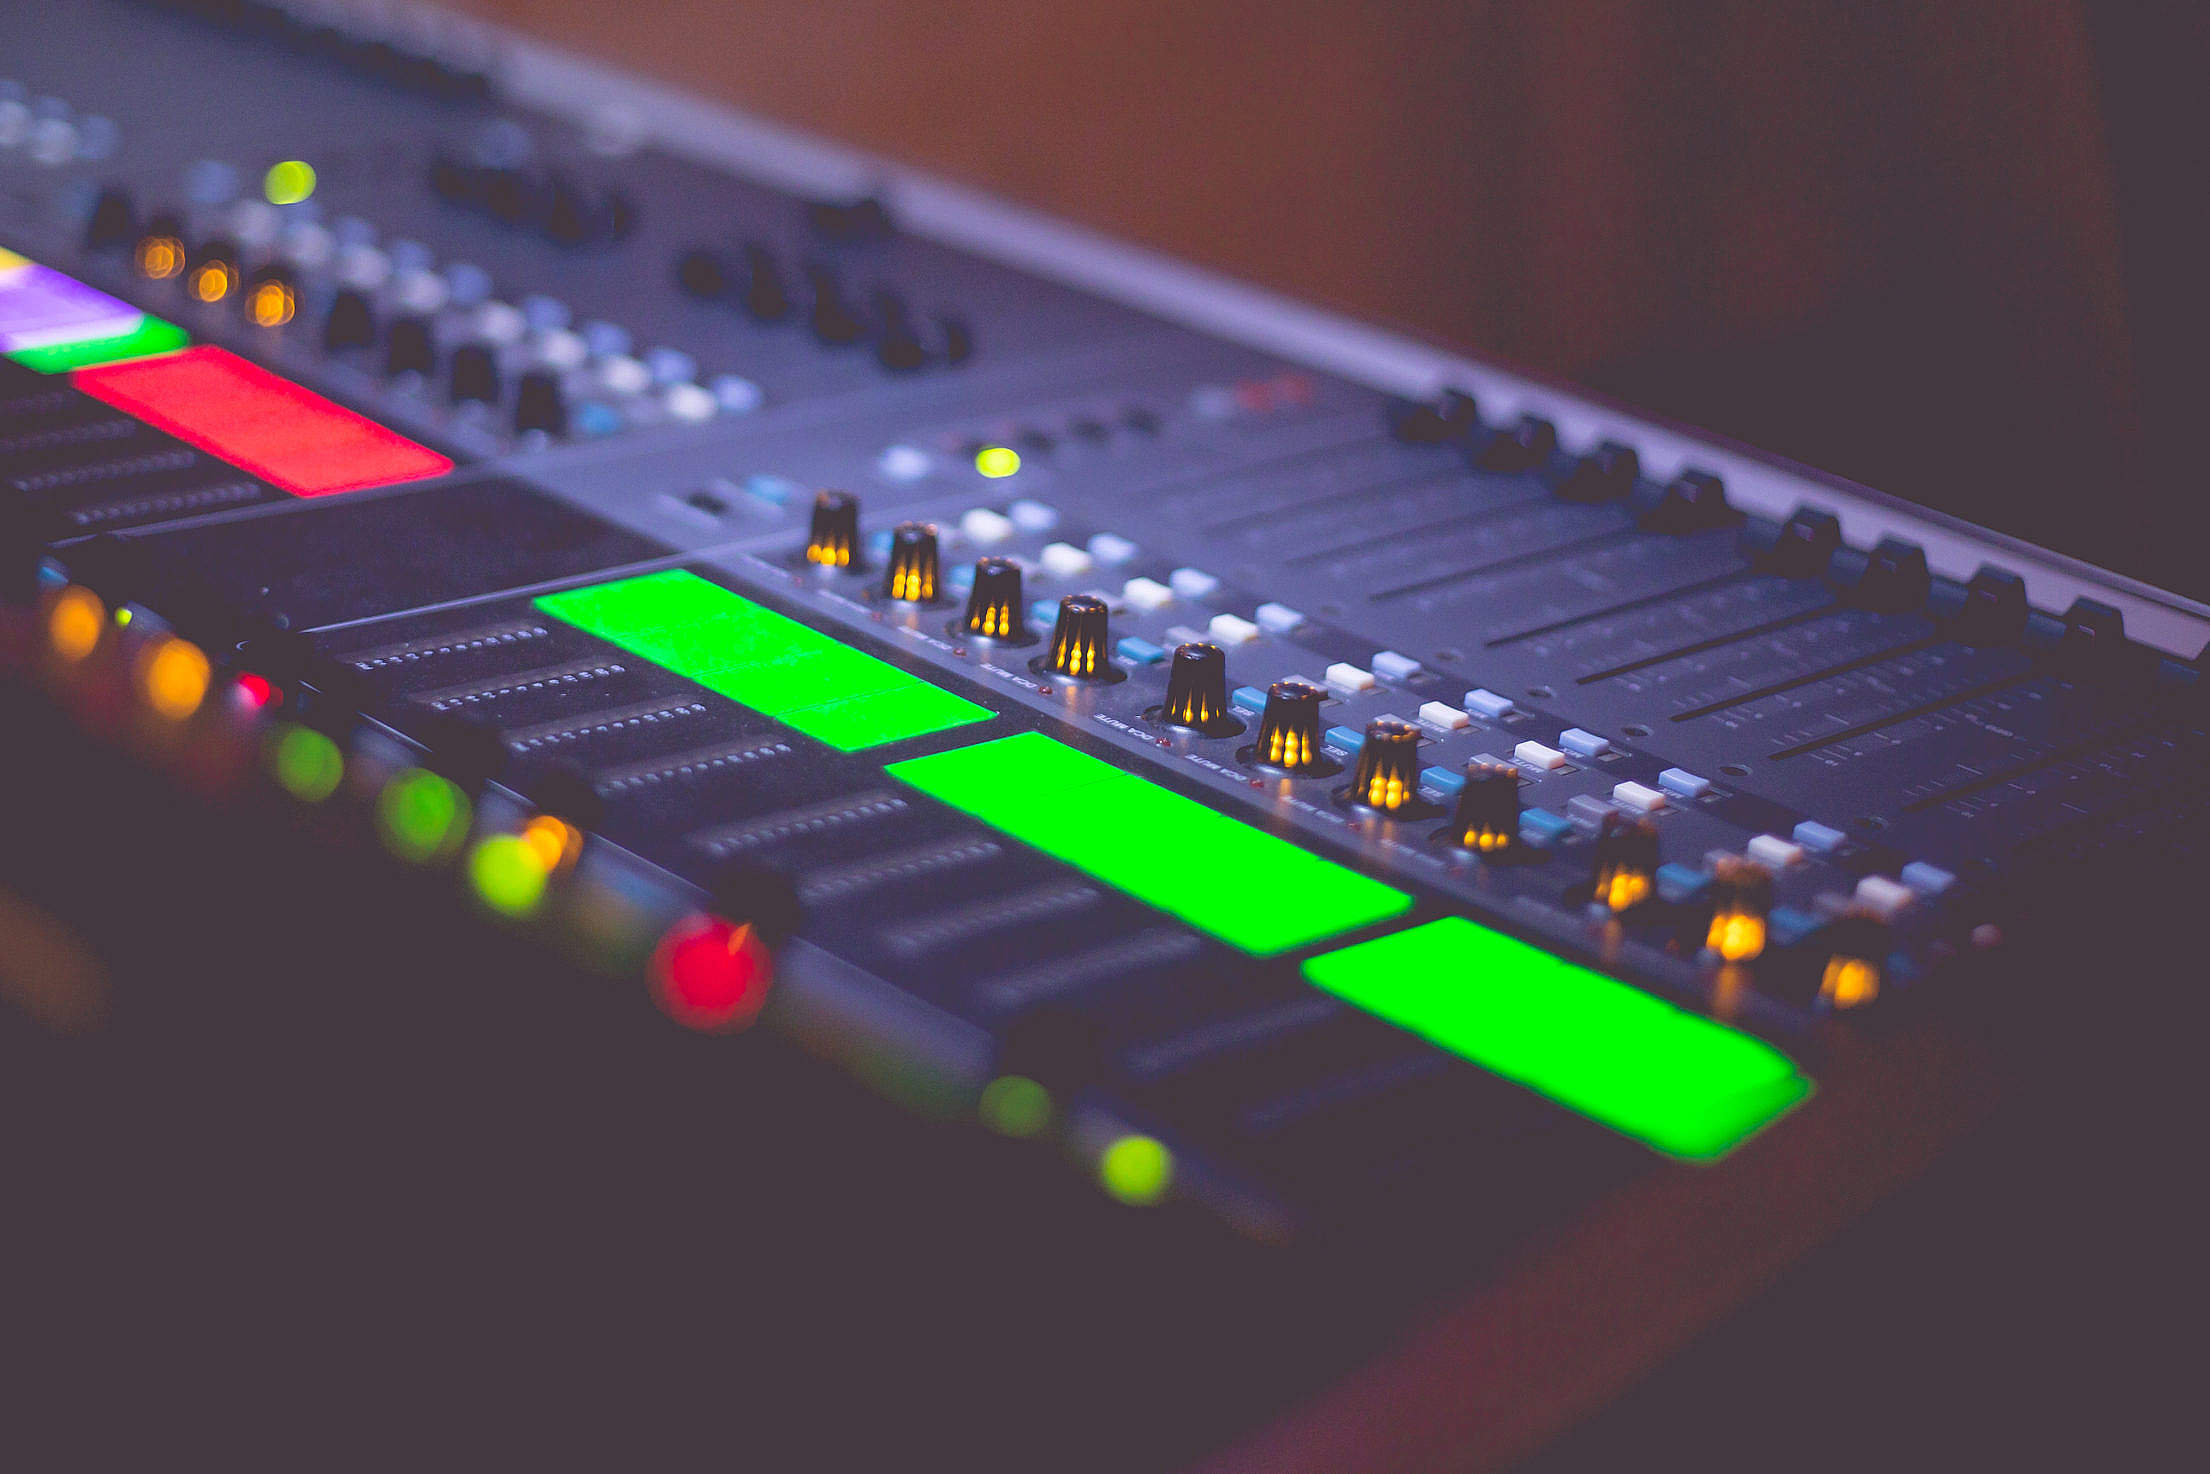 Sound Engineer's Audio Music Mix Pult Free Stock Photo